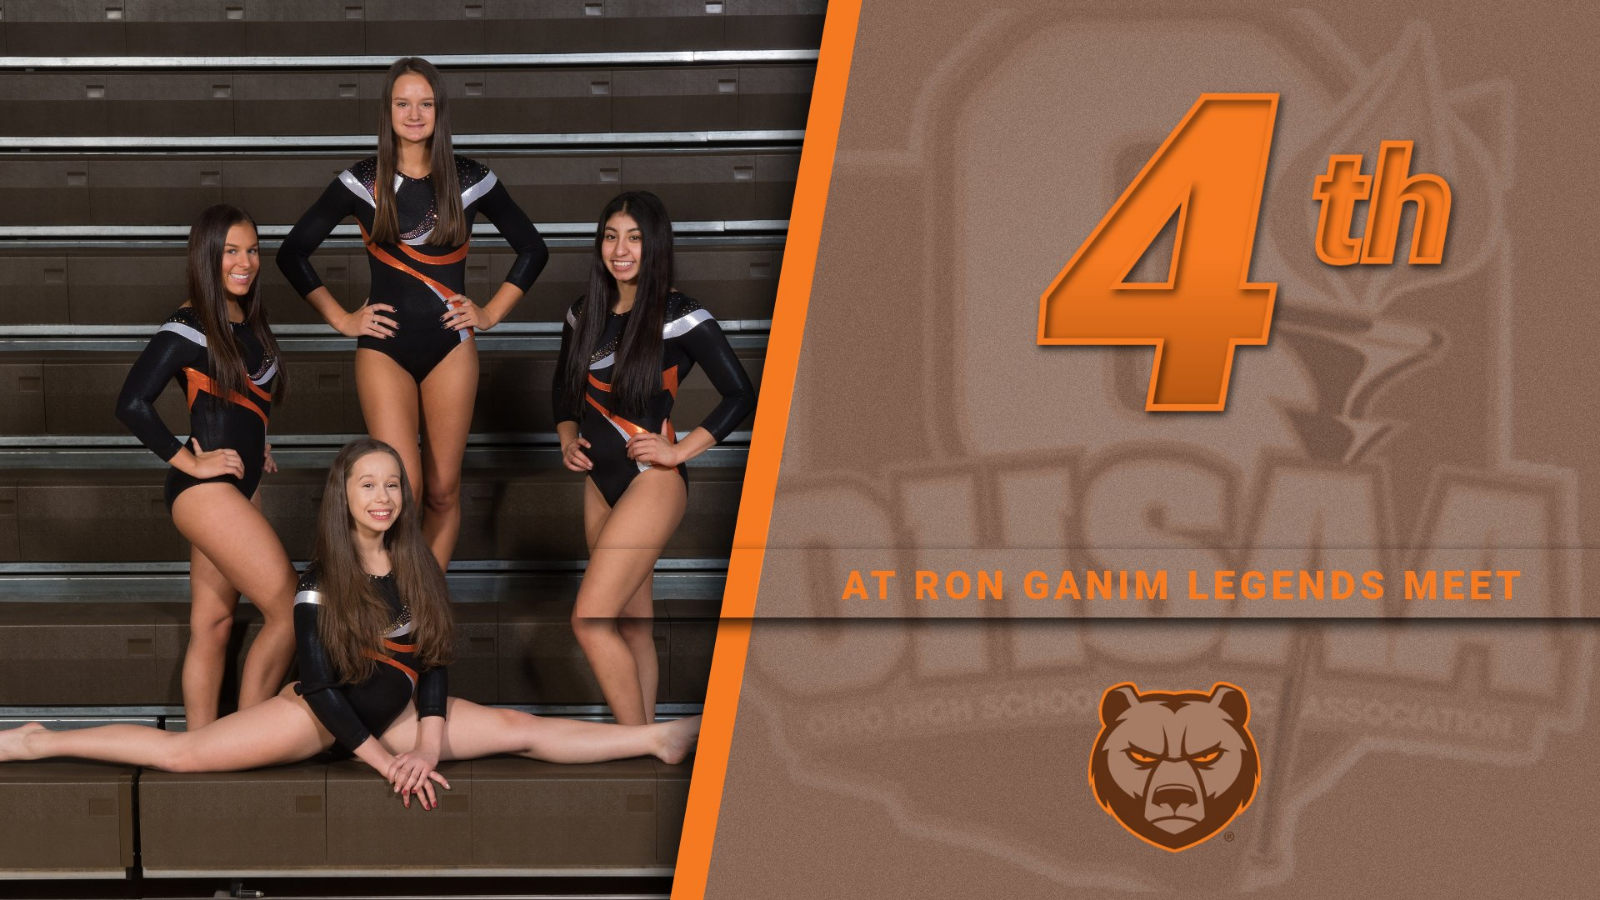 Padua Gymnasts Capture Top 5 Team Performance at Ron Ganim Legends Meet